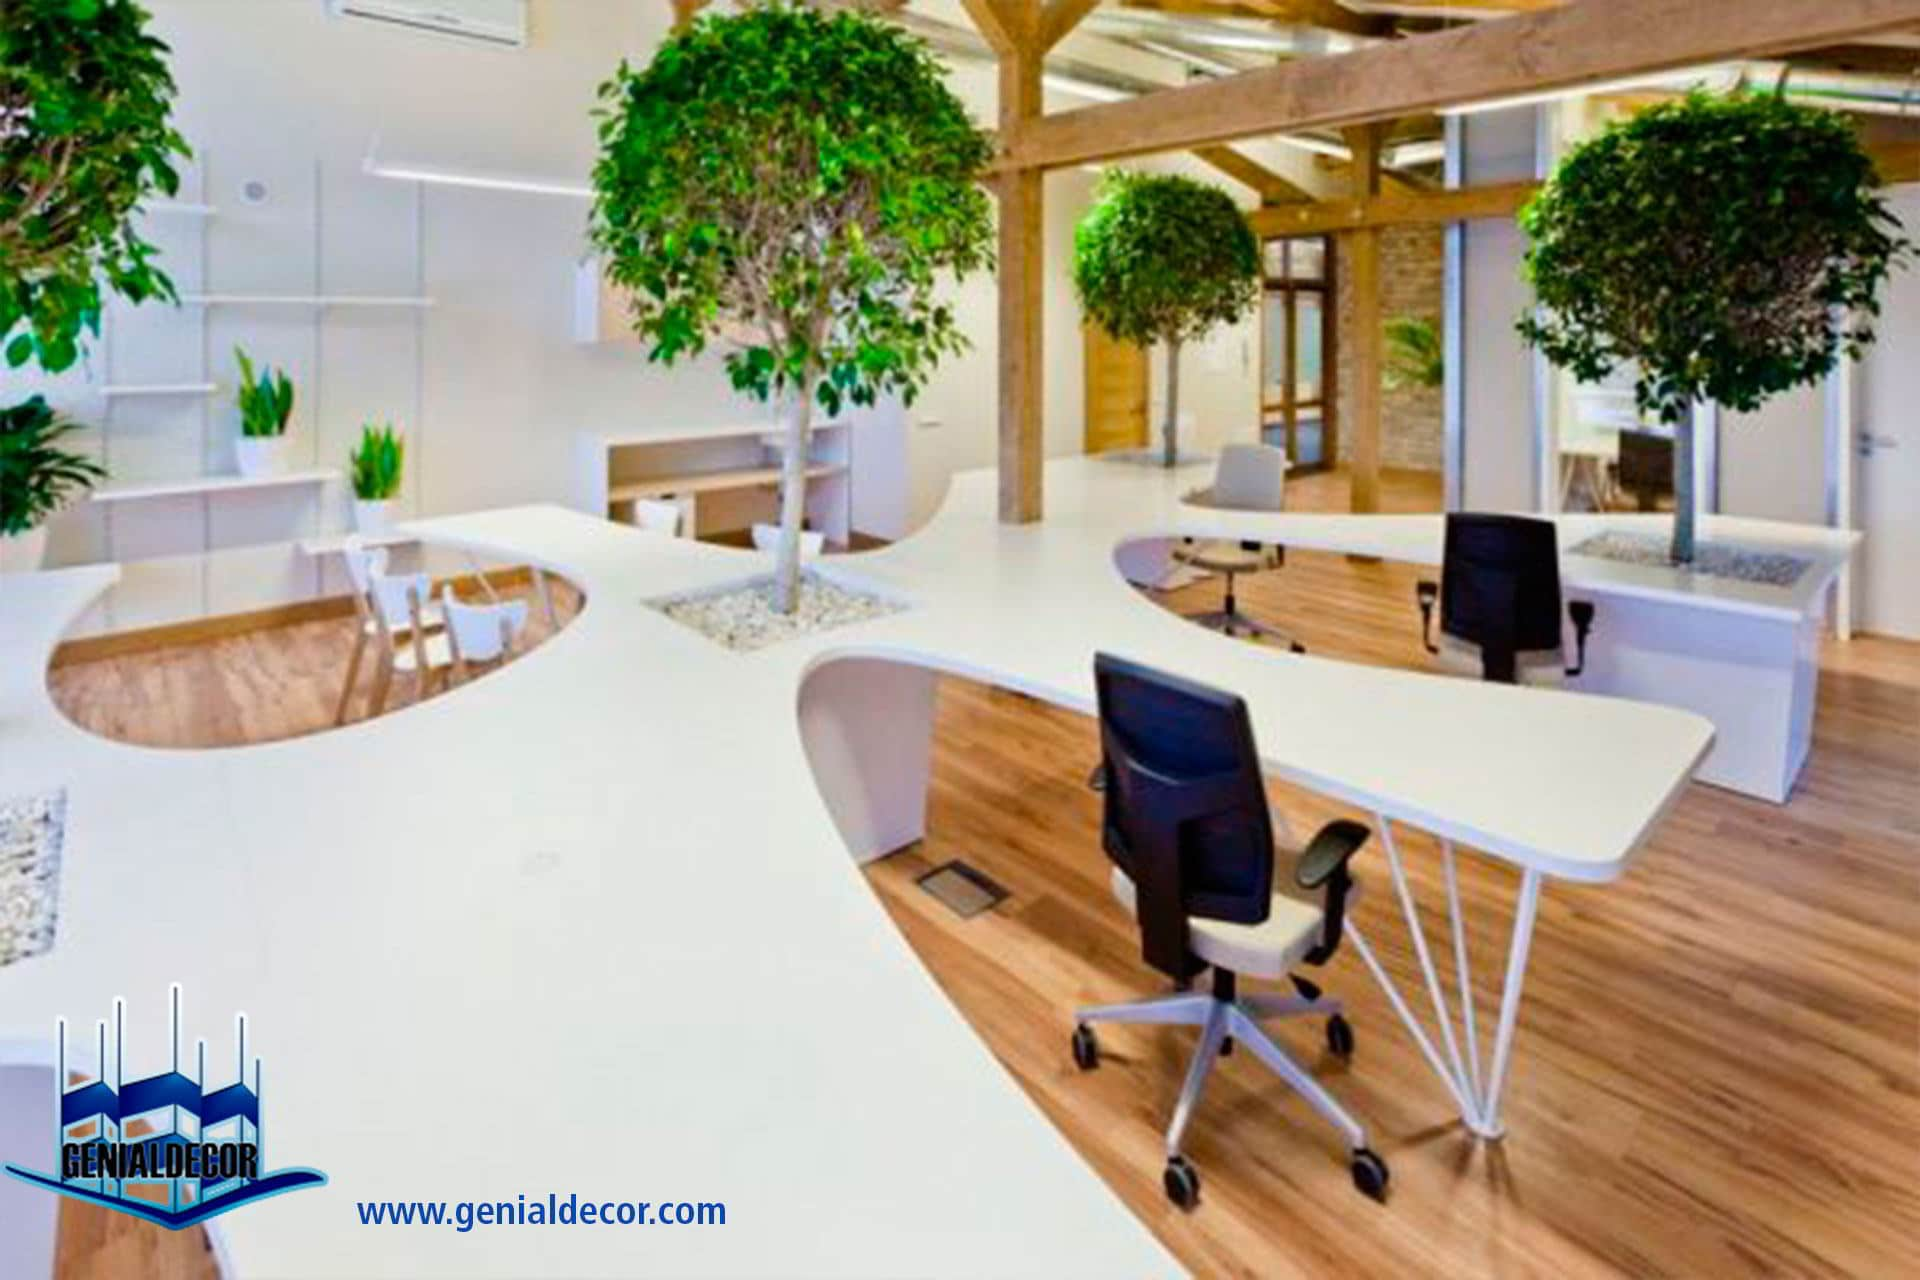 5 tips para decorar tu oficina genialdecor for Plantas decorativas para oficina